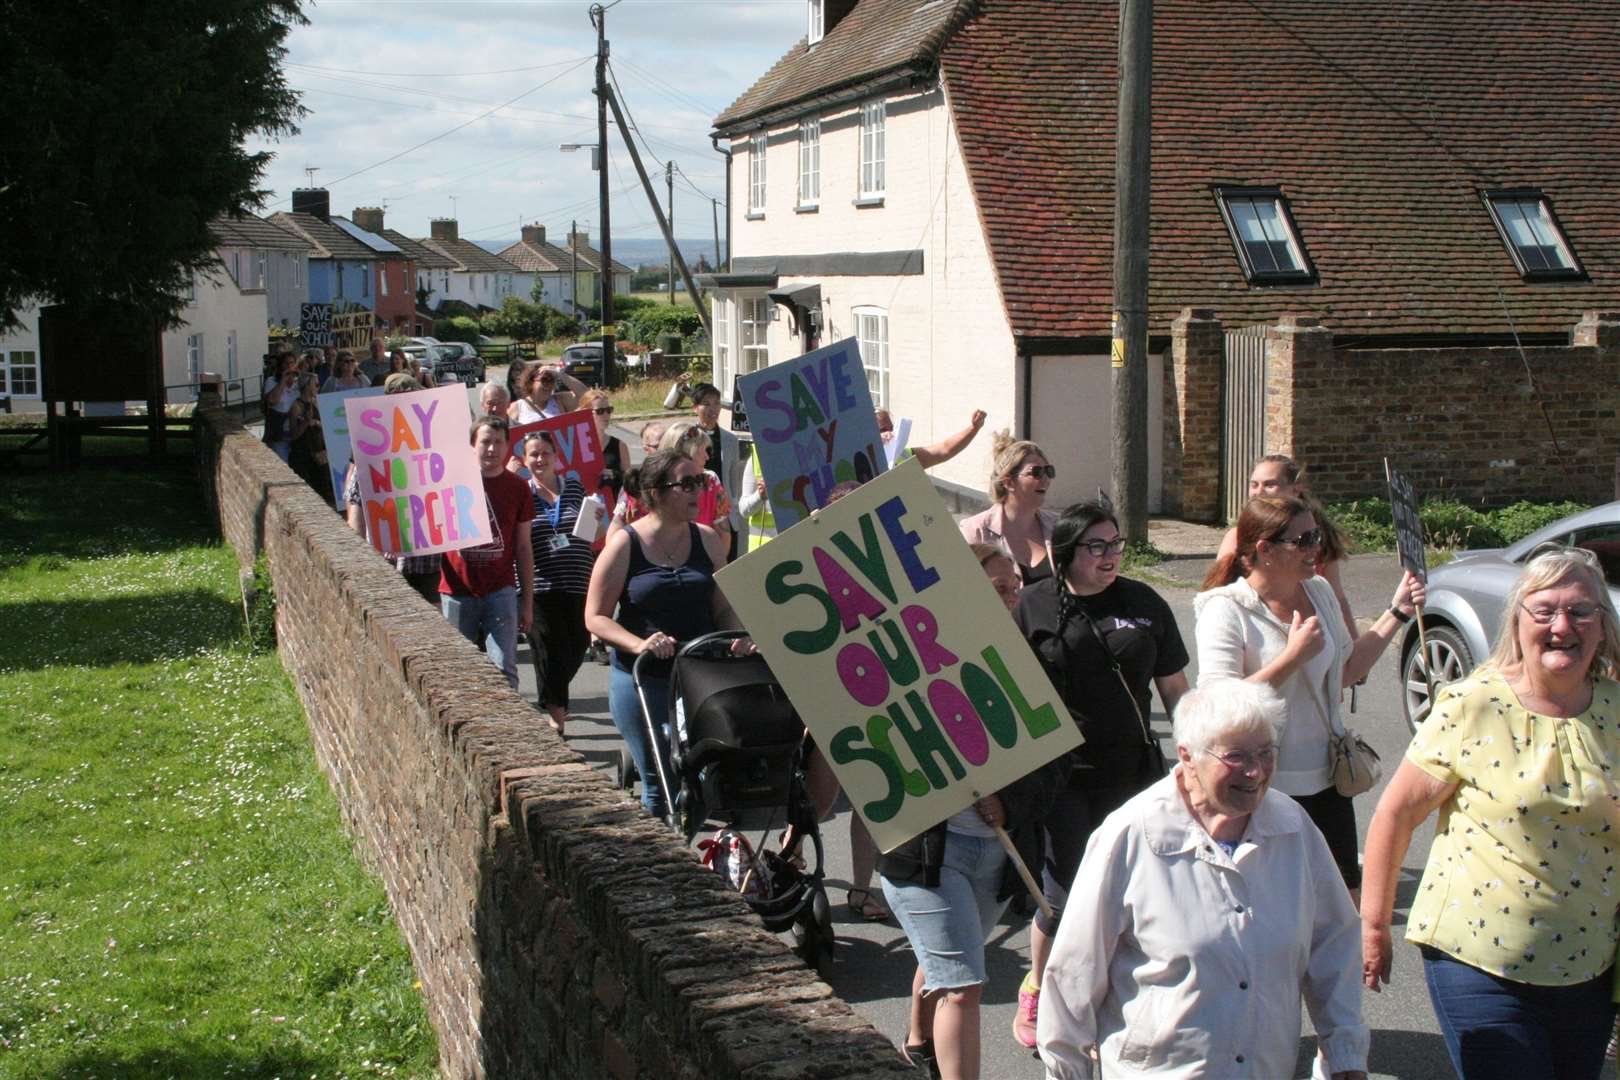 Protestors march from Stoke Primary Academy to Allhallows Primary Academy to rally against merger plans (13238487)